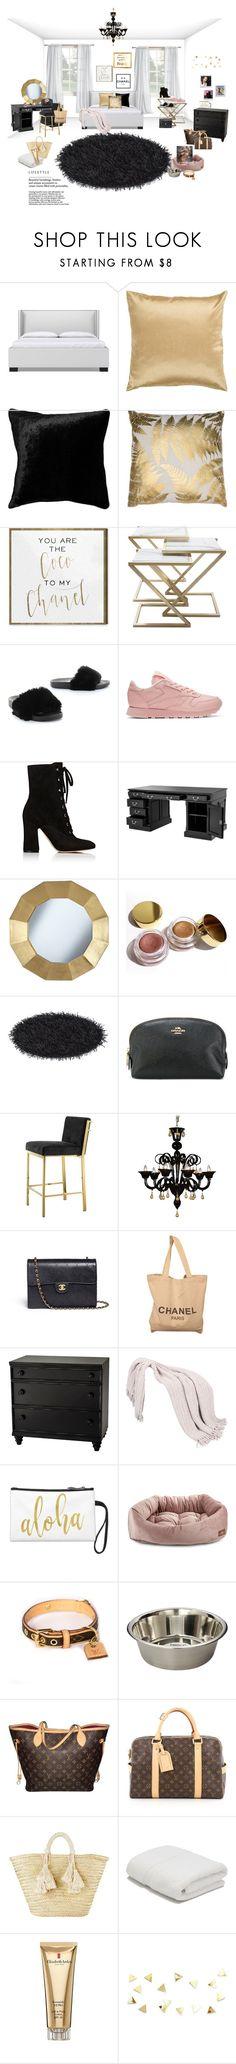 """""""My room!✨ (Update)"""" by queen-bellaa ❤ liked on Polyvore featuring Surya, Squarefeathers, Oliver Gal Artist Co., Reebok, Gianvito Rossi, Eichholtz, Universal Lighting and Decor, Kylie Cosmetics, Coach and Chanel"""